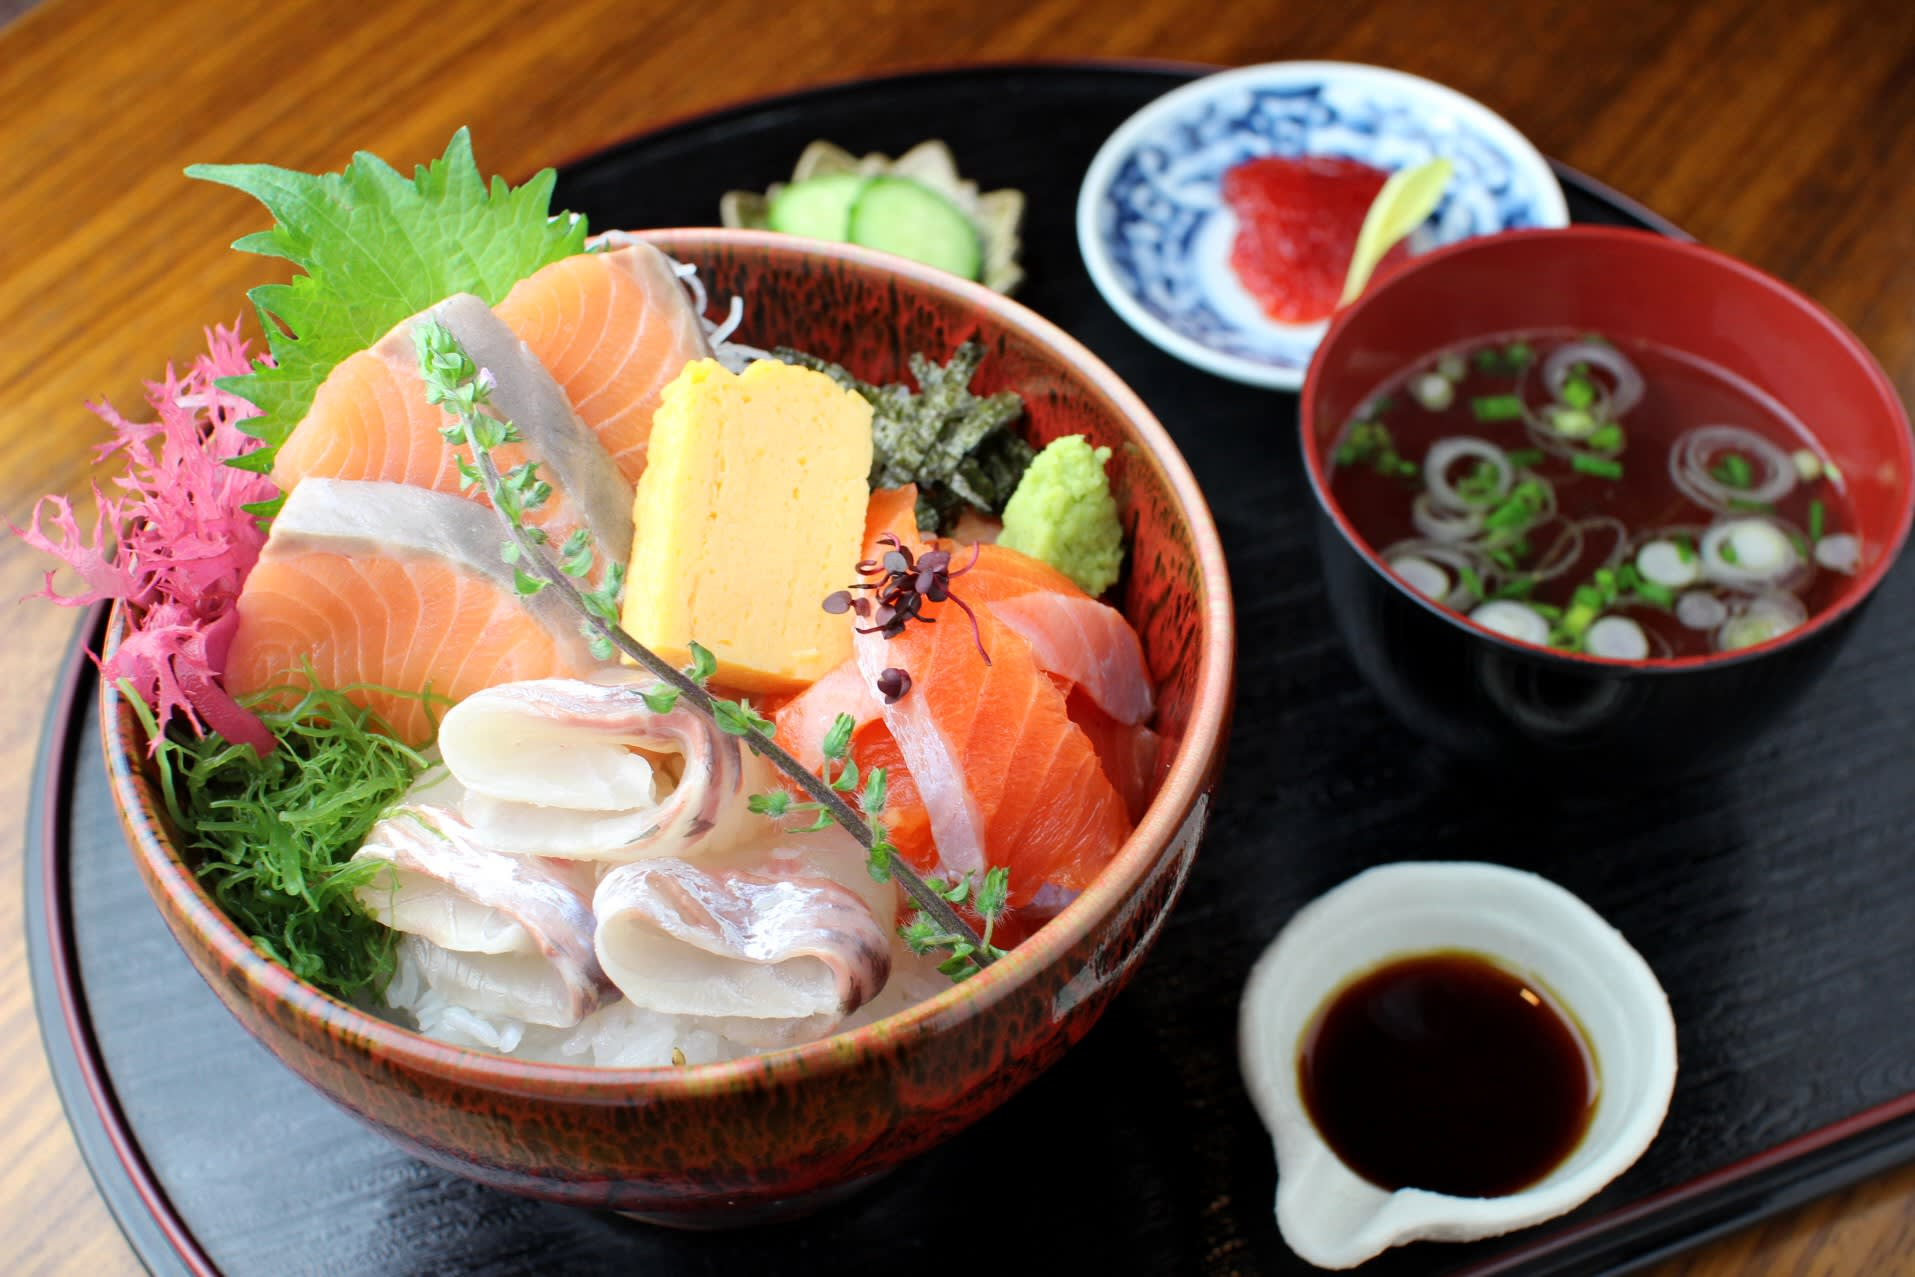 Salmon gives Japan fish farmers chance to hook Asian customers